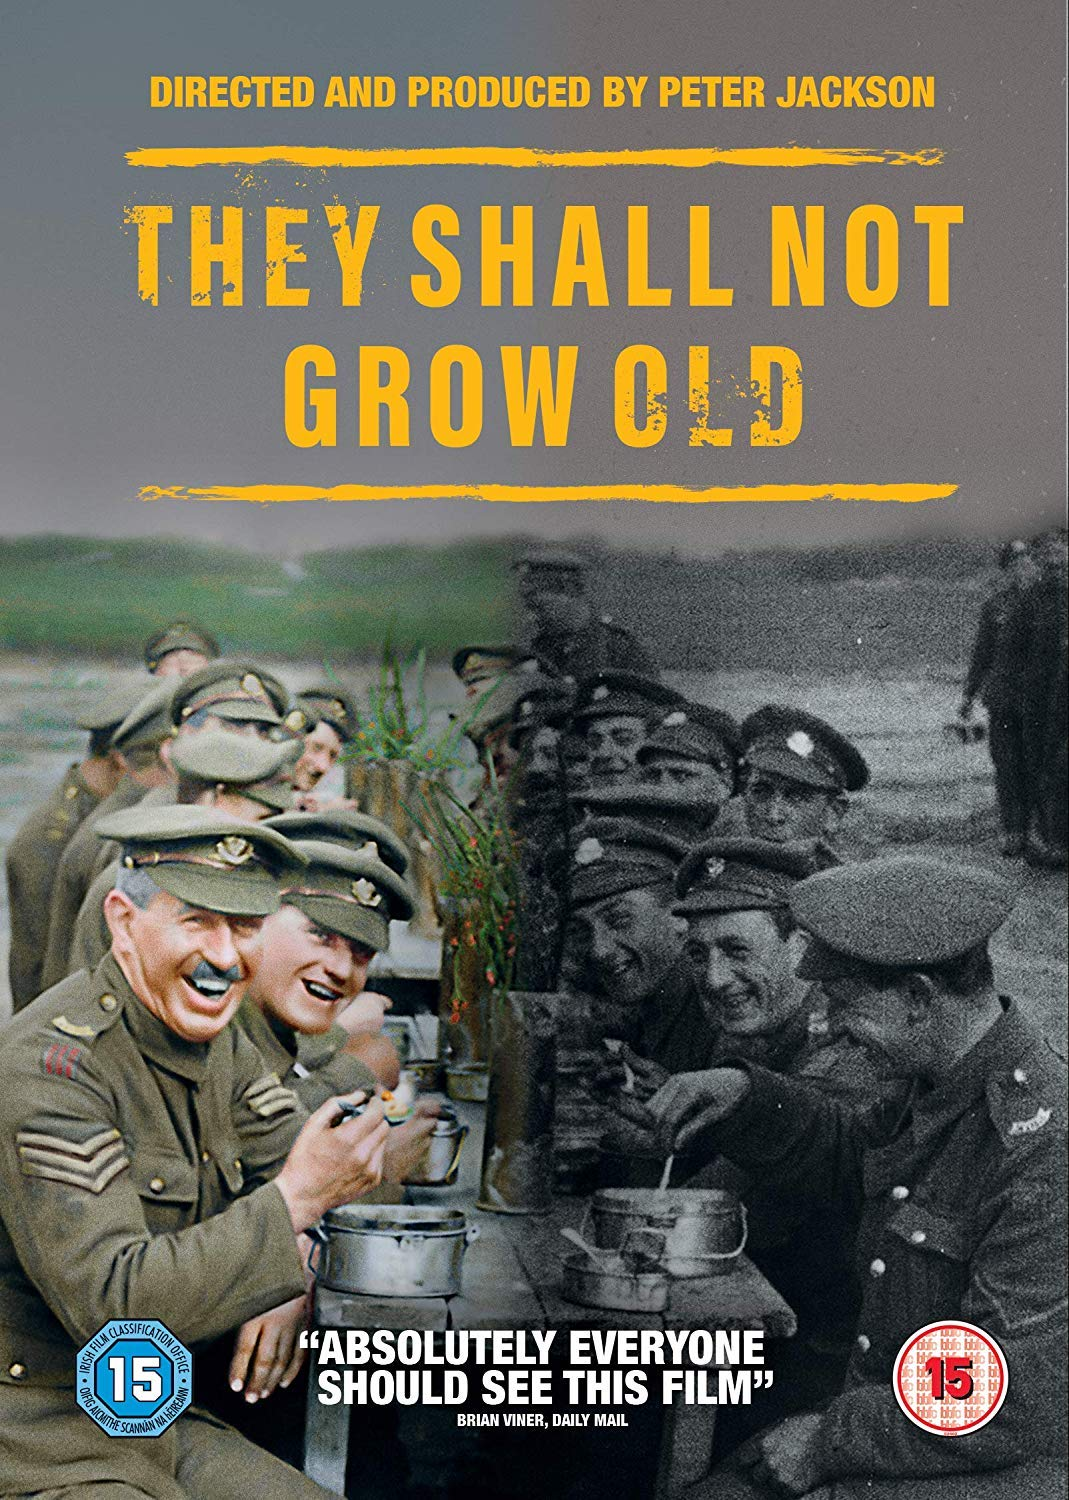 They Shall Not Grow Old - Peter Jackson [DVD]